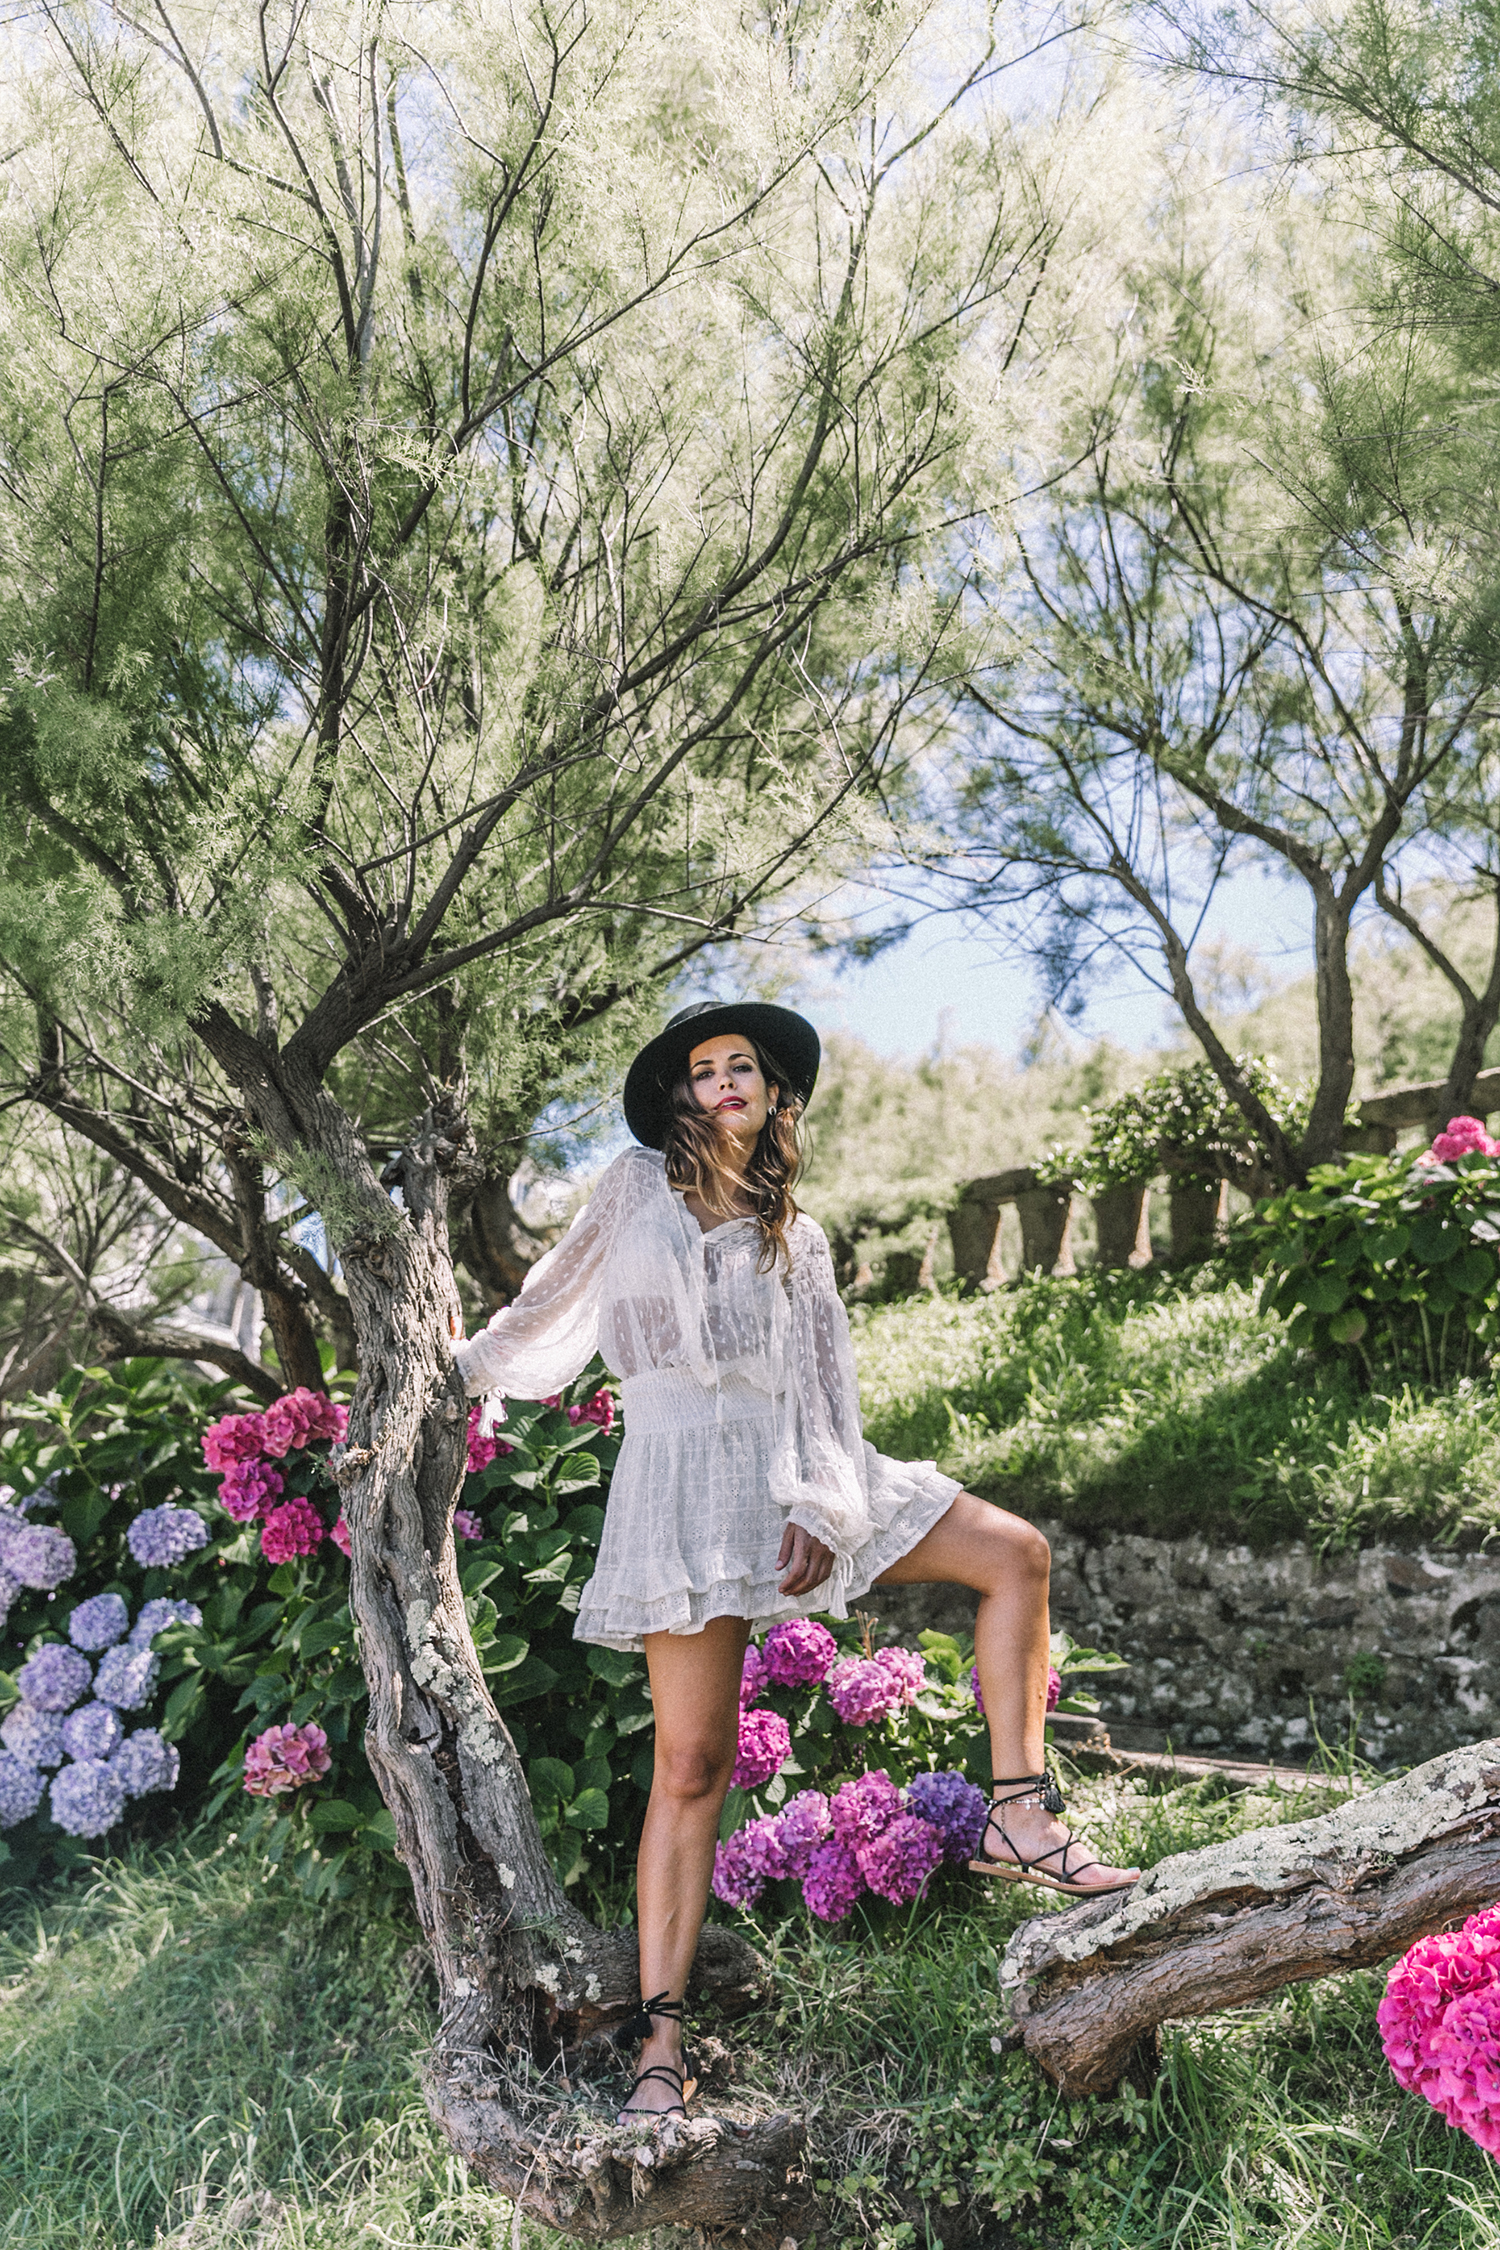 White_Outfit-Denim_Jacket-Lack_Of_Color_Hat-Outfit-Biarritz-Levis-Live_In_Levis-Street_Style-Summer-Boho_Skirt-Collage_Vintage-42